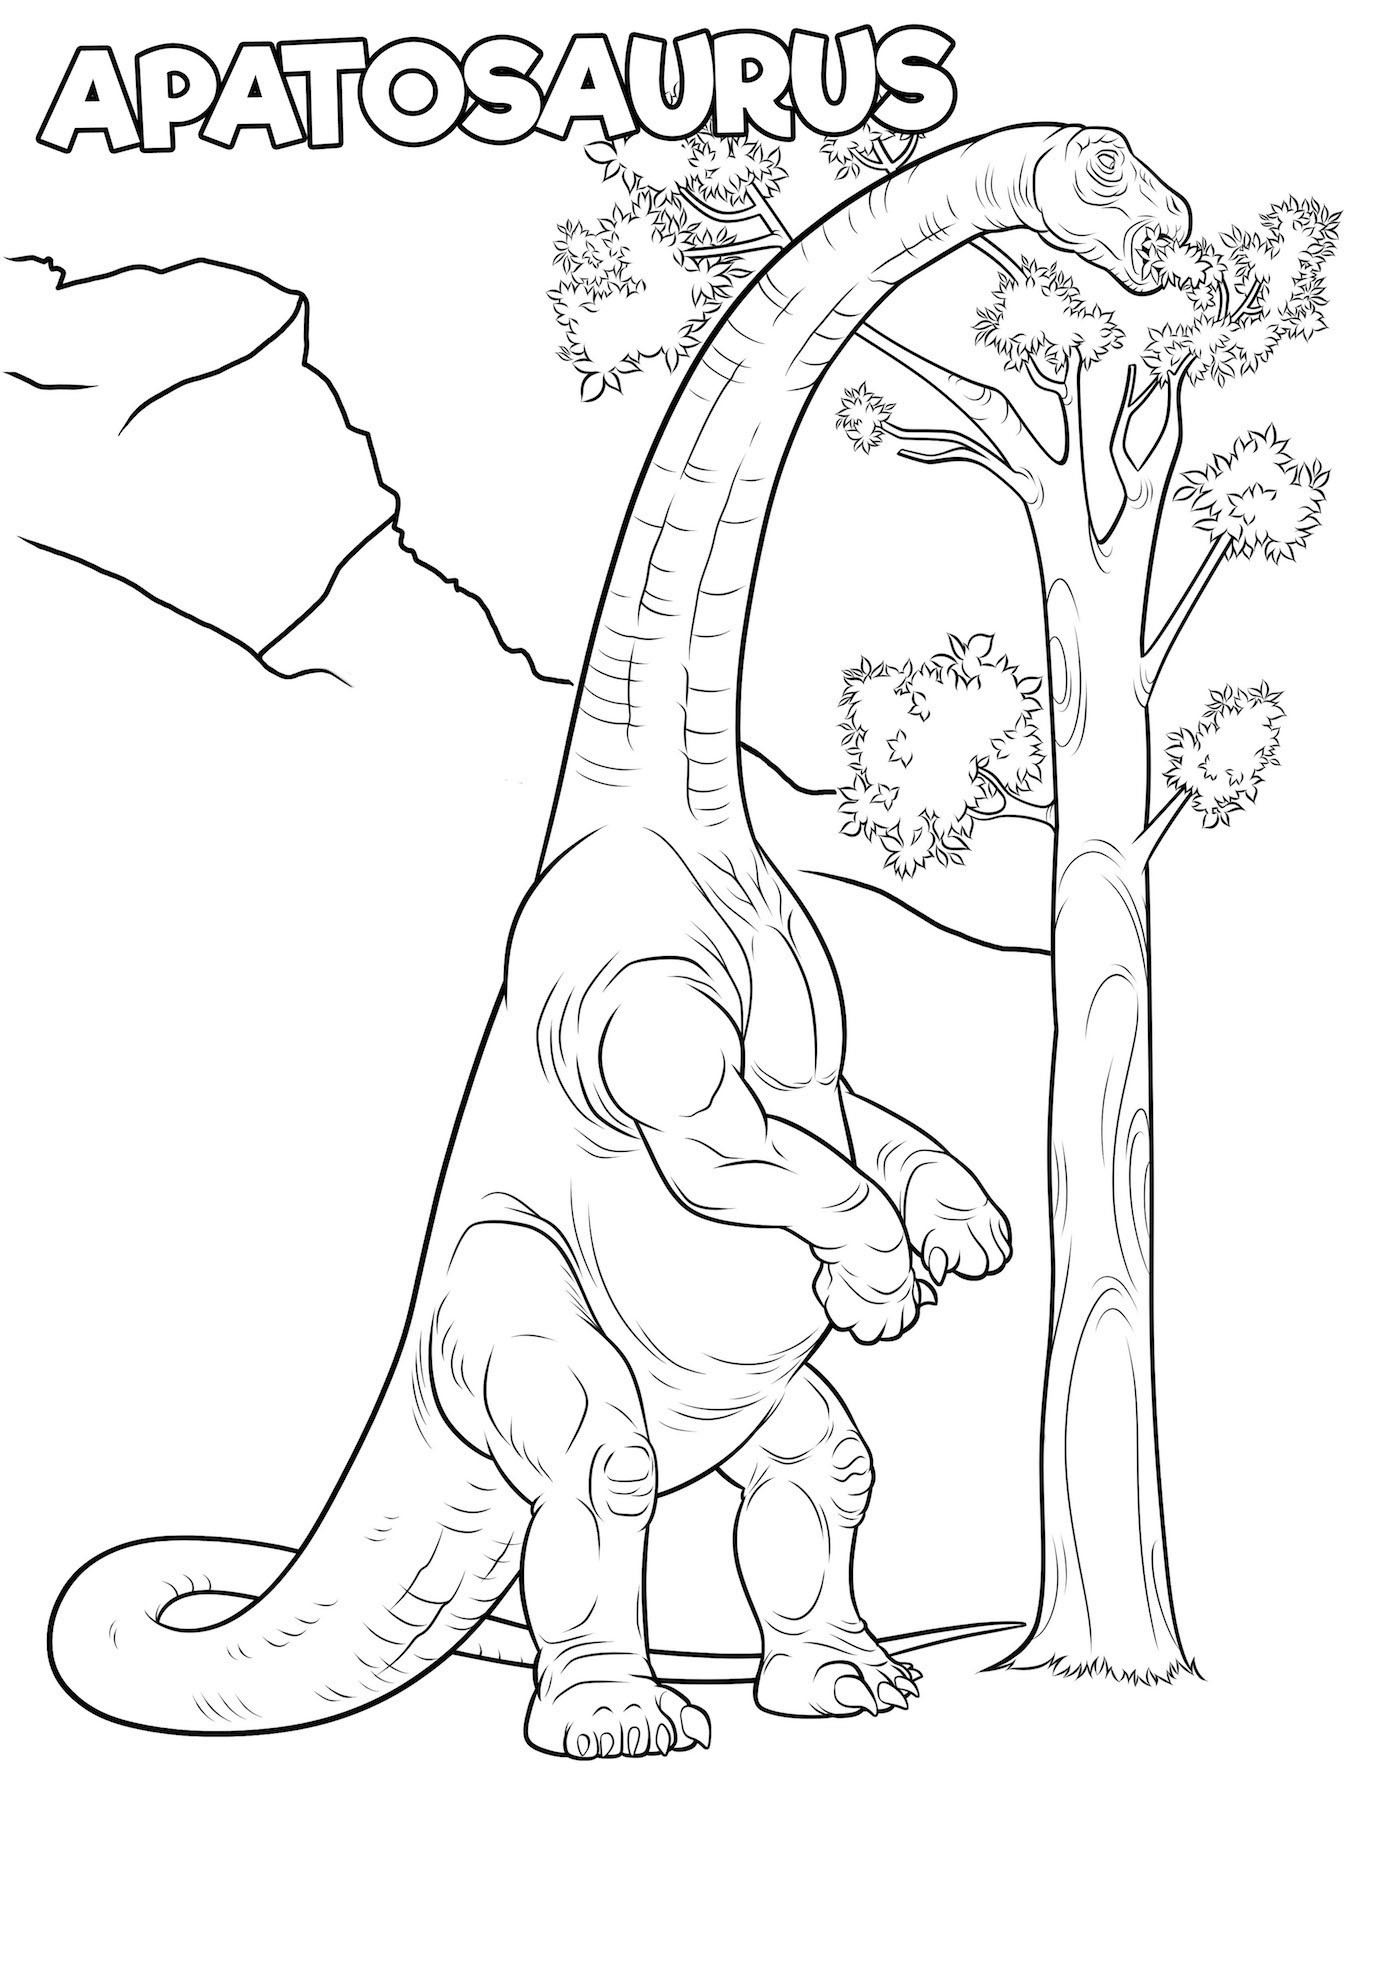 Apatosaur is taller than trees Coloring Page